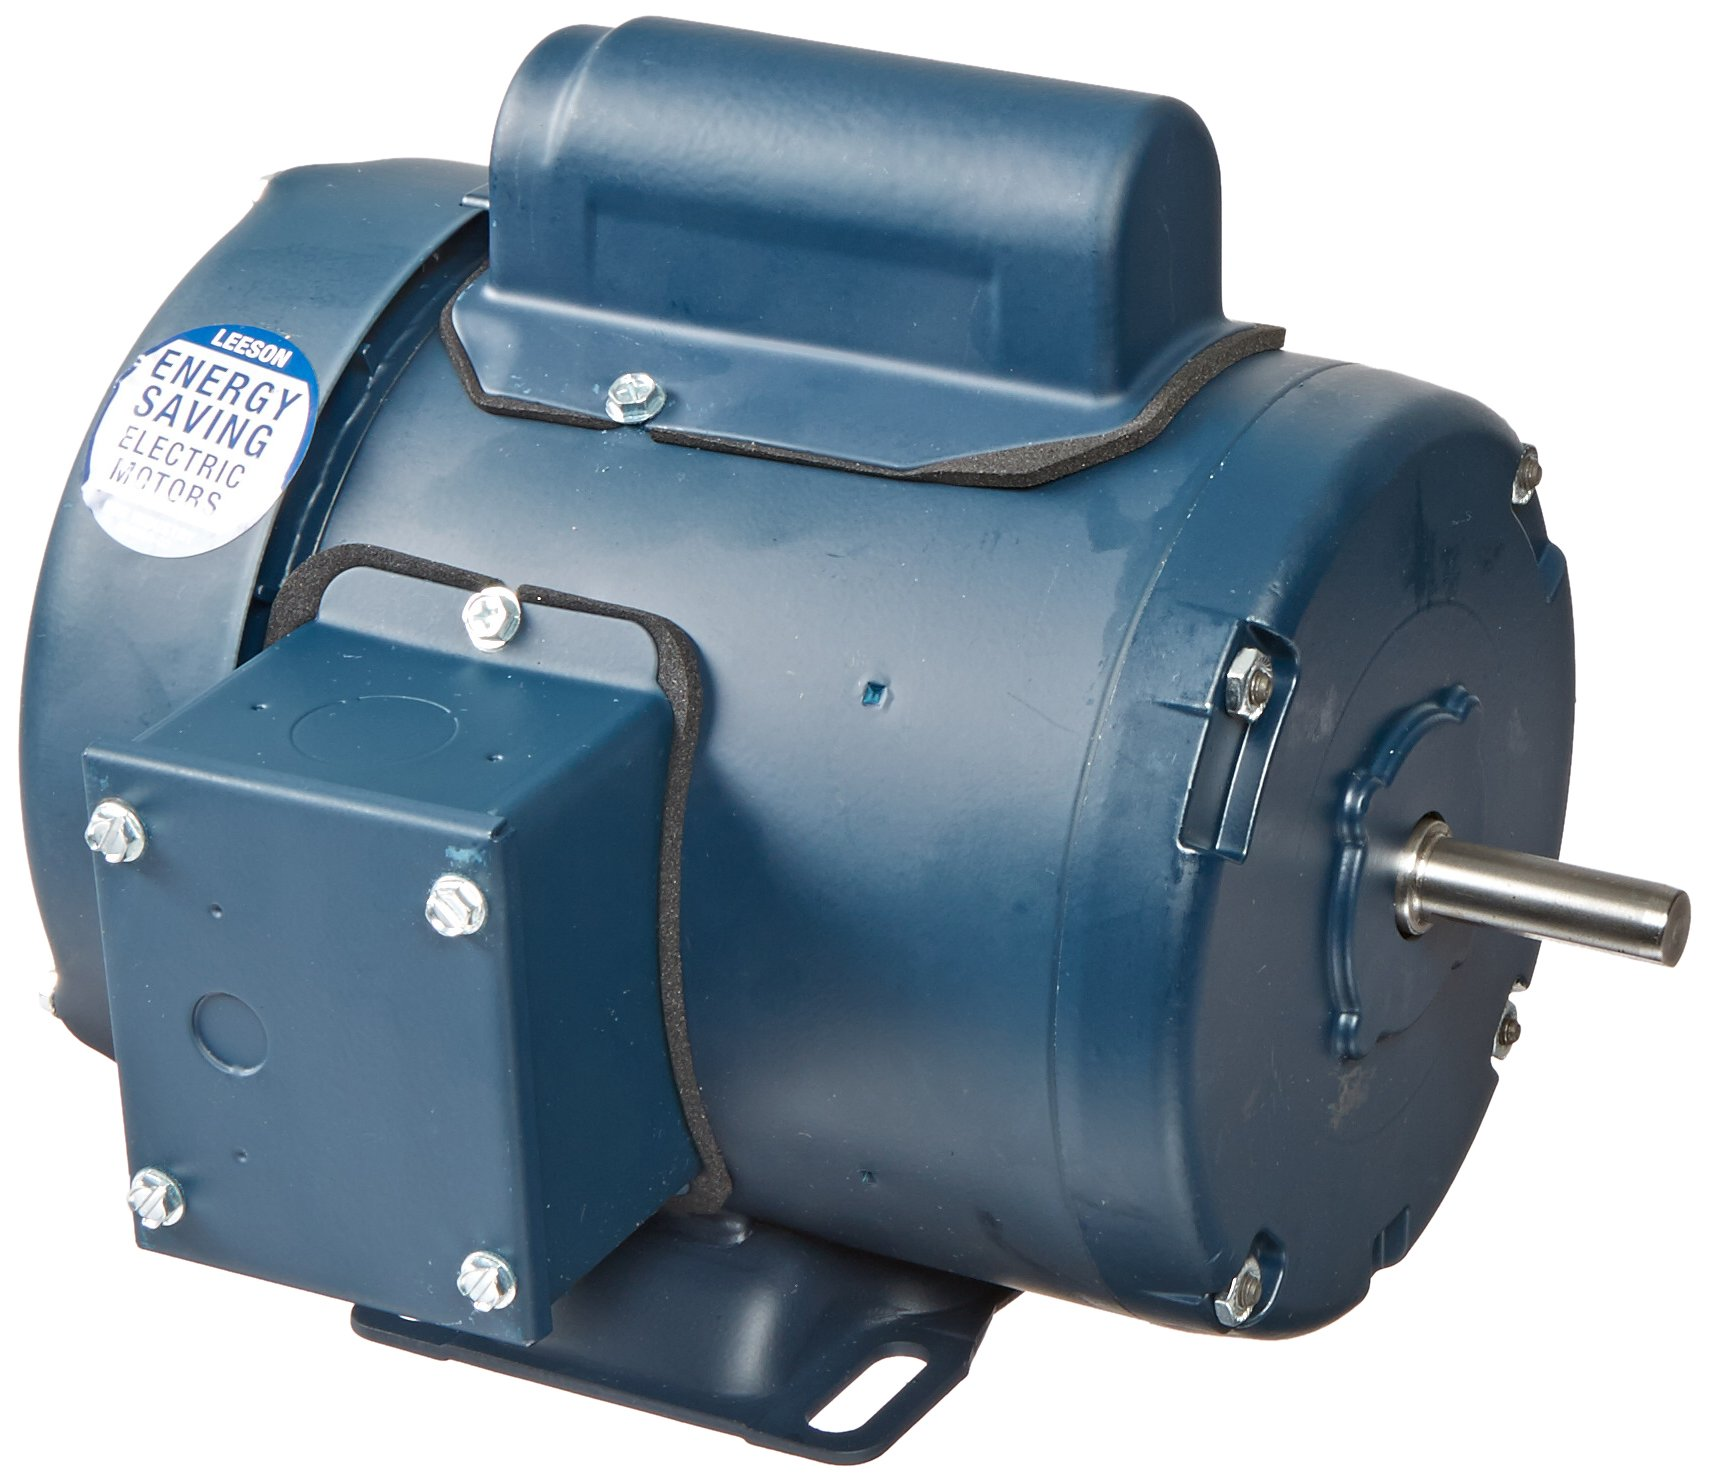 Leeson 102020.00 General Purpose TEFC Motor, 1 Phase, 48 Frame, Rigid Mounting, 1/2HP, 3600 RPM, 115/208-230V Voltage, 60Hz Fequency